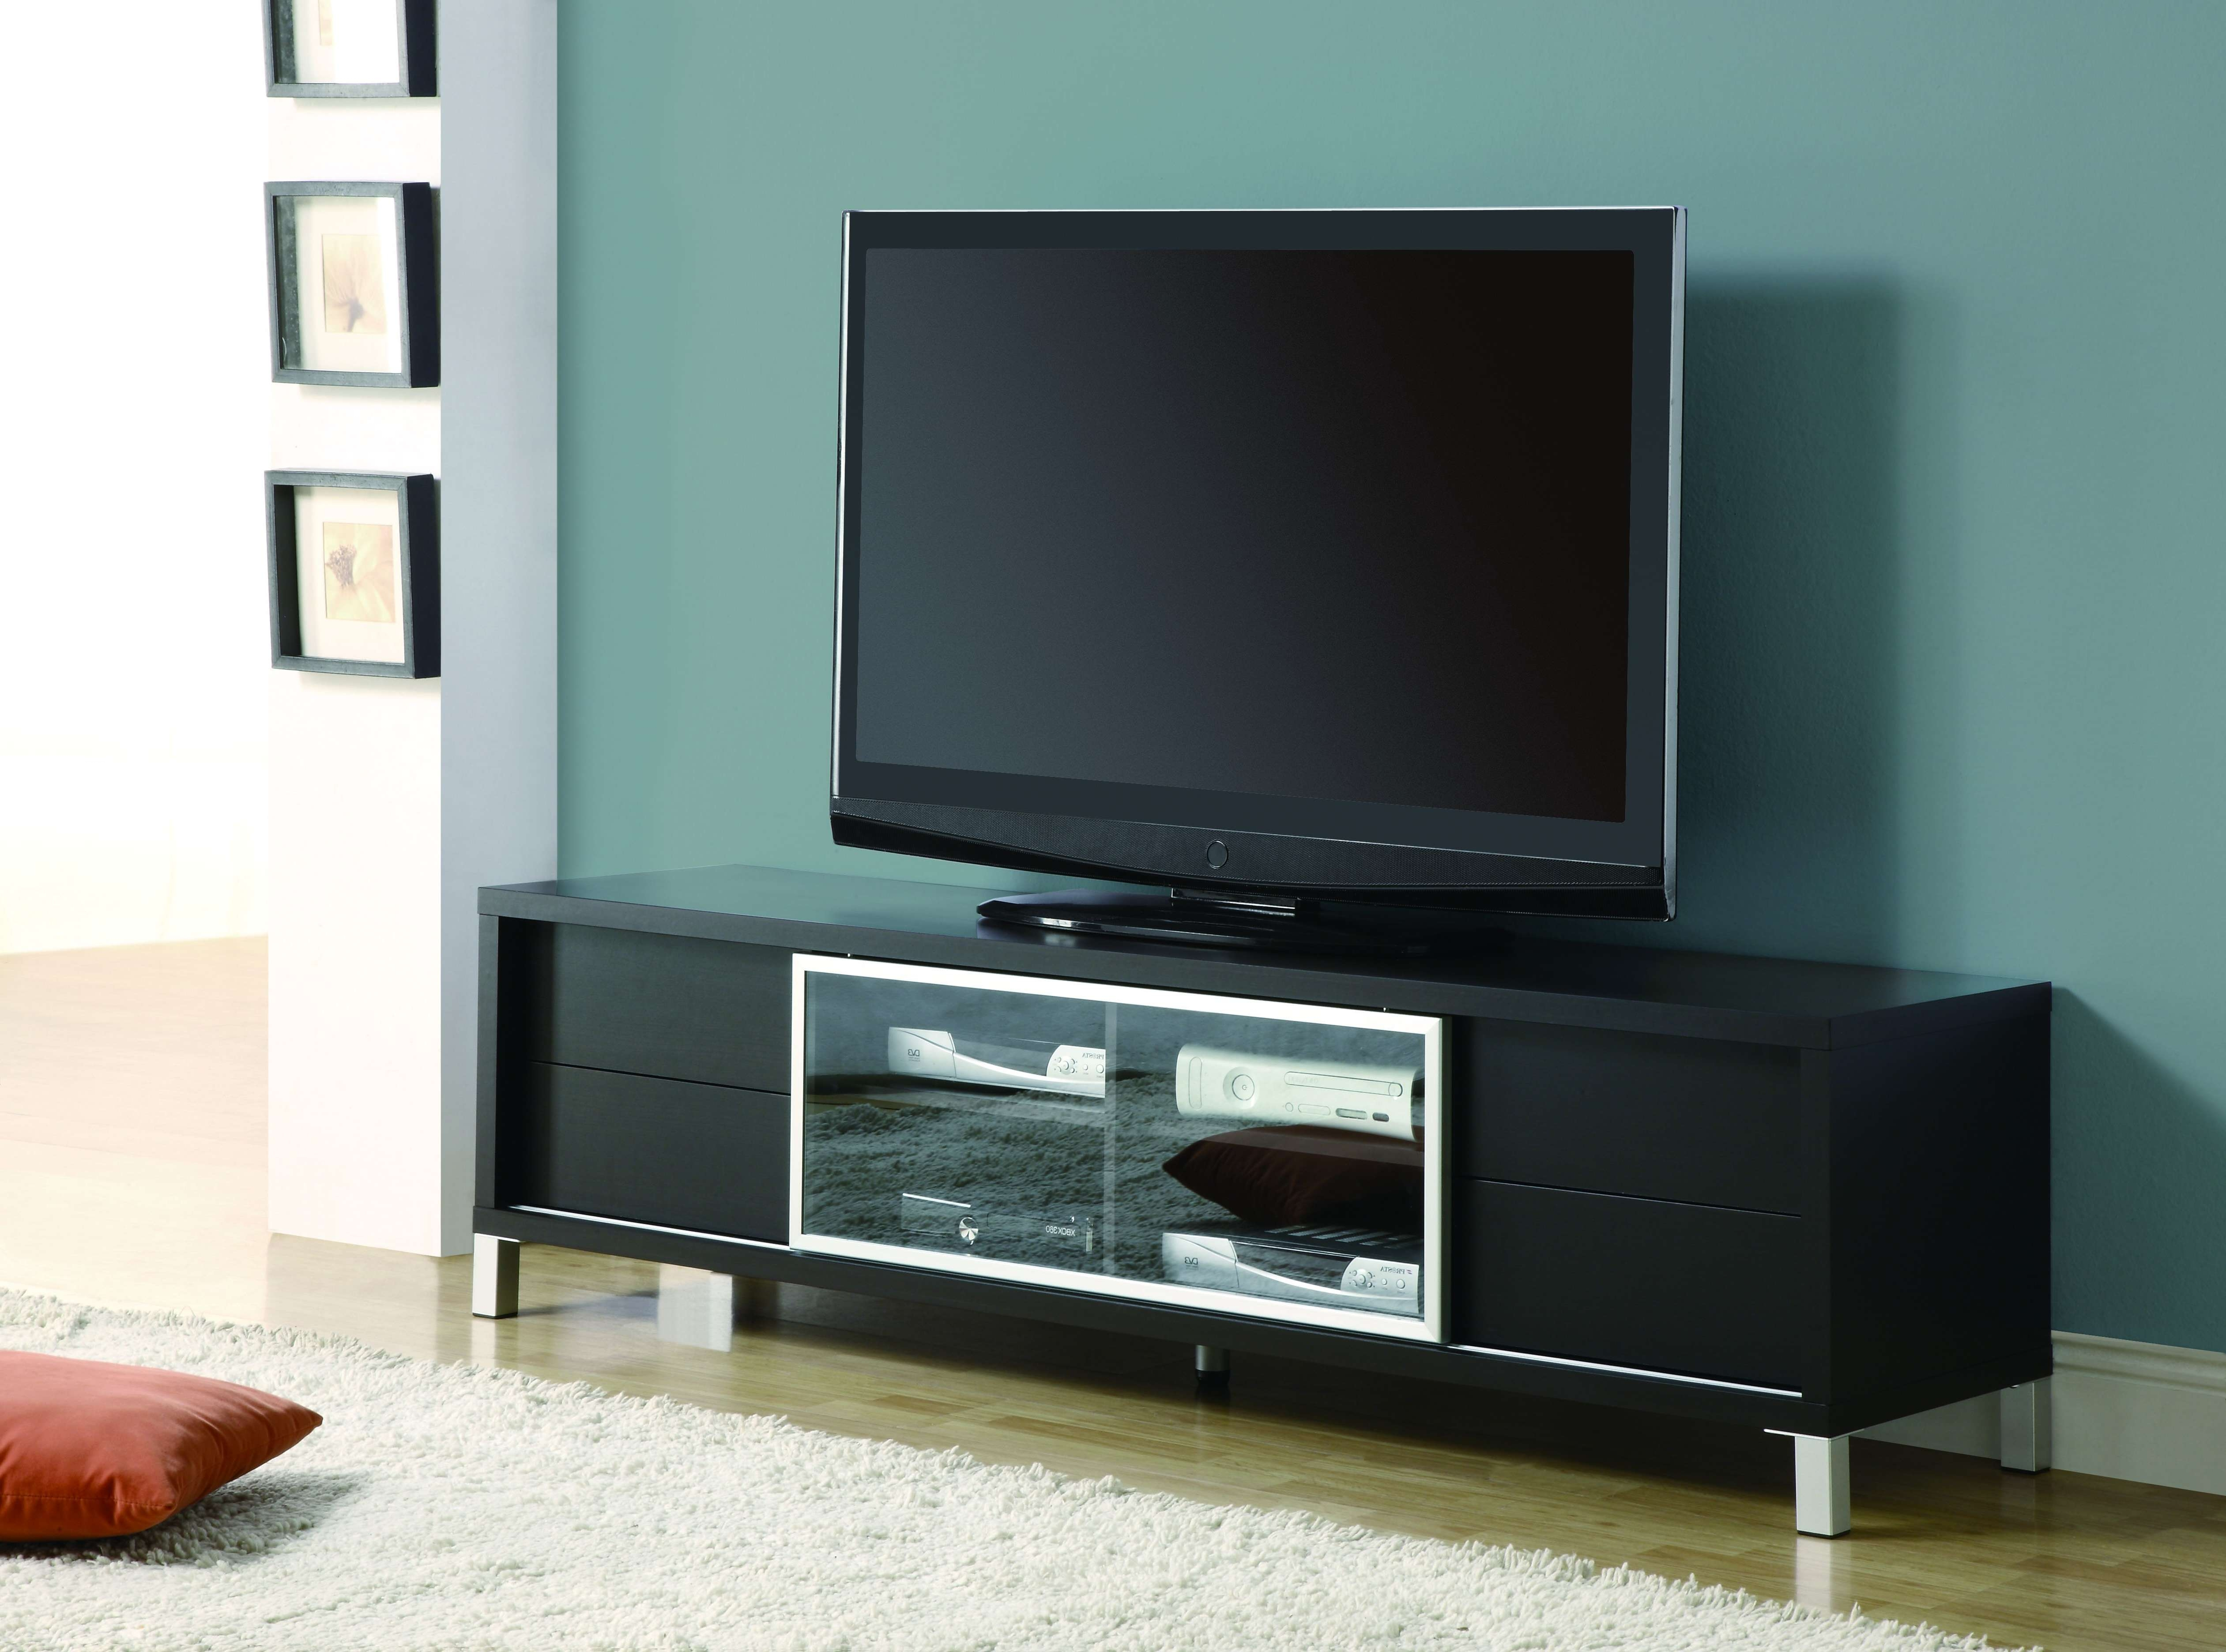 Black Painted Oak Wood Wide Screen Tv Stand Mixed Light Blue Wall In Oak Tv Stands For Flat Screen (View 11 of 15)